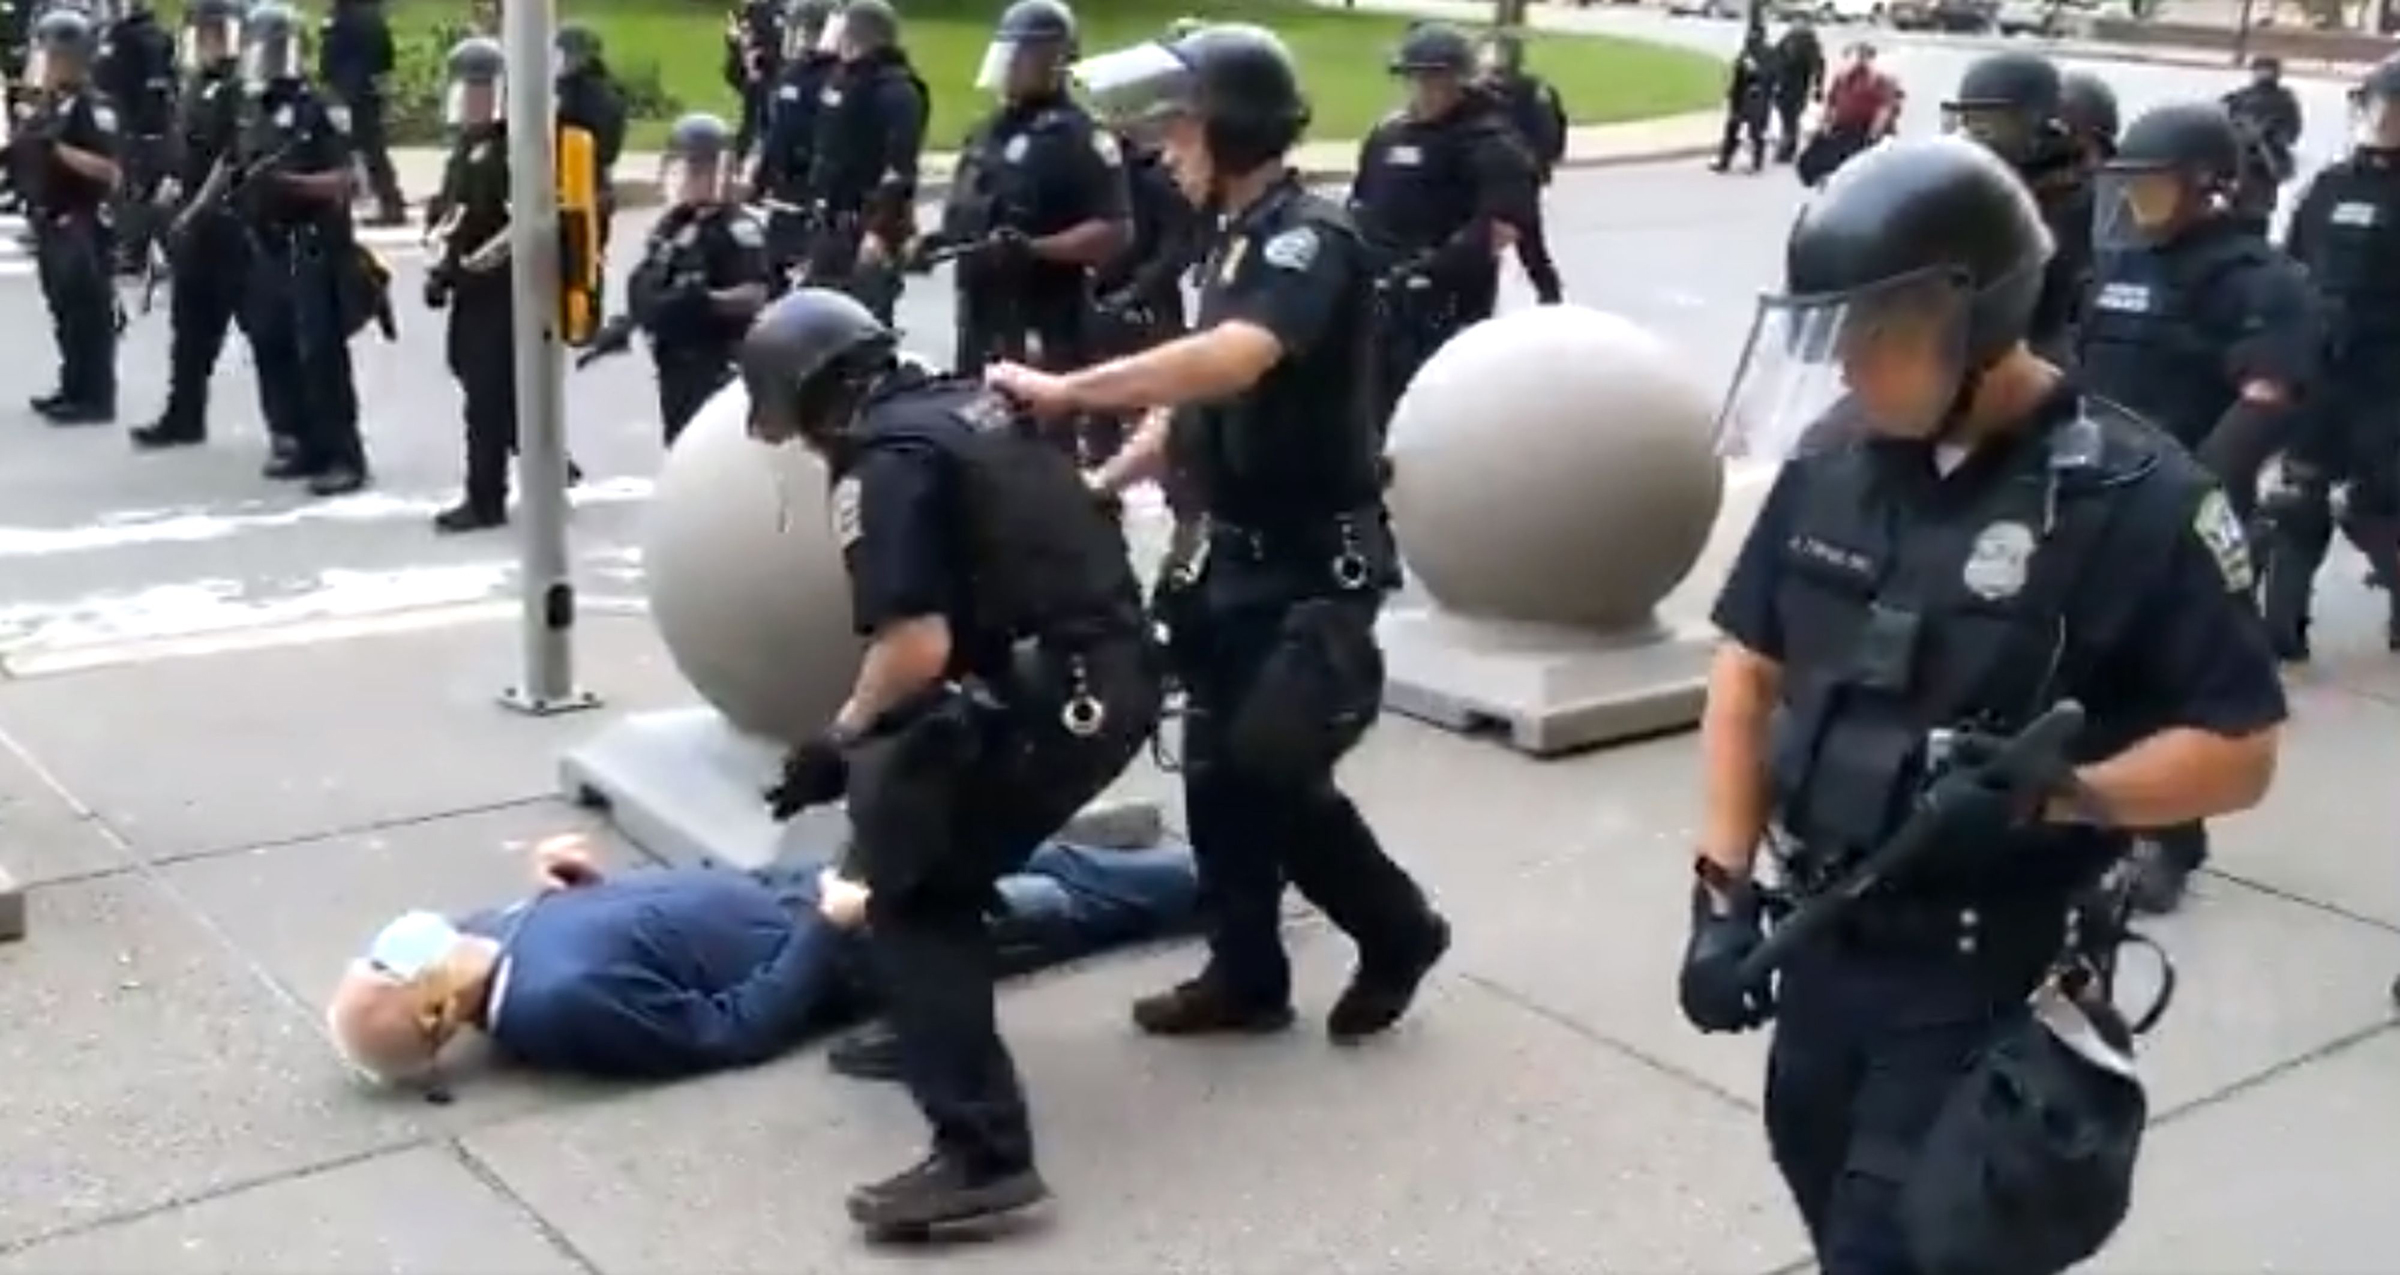 Martin Gugino was shoved by police officers in Buffalo, N.Y., on June 4.